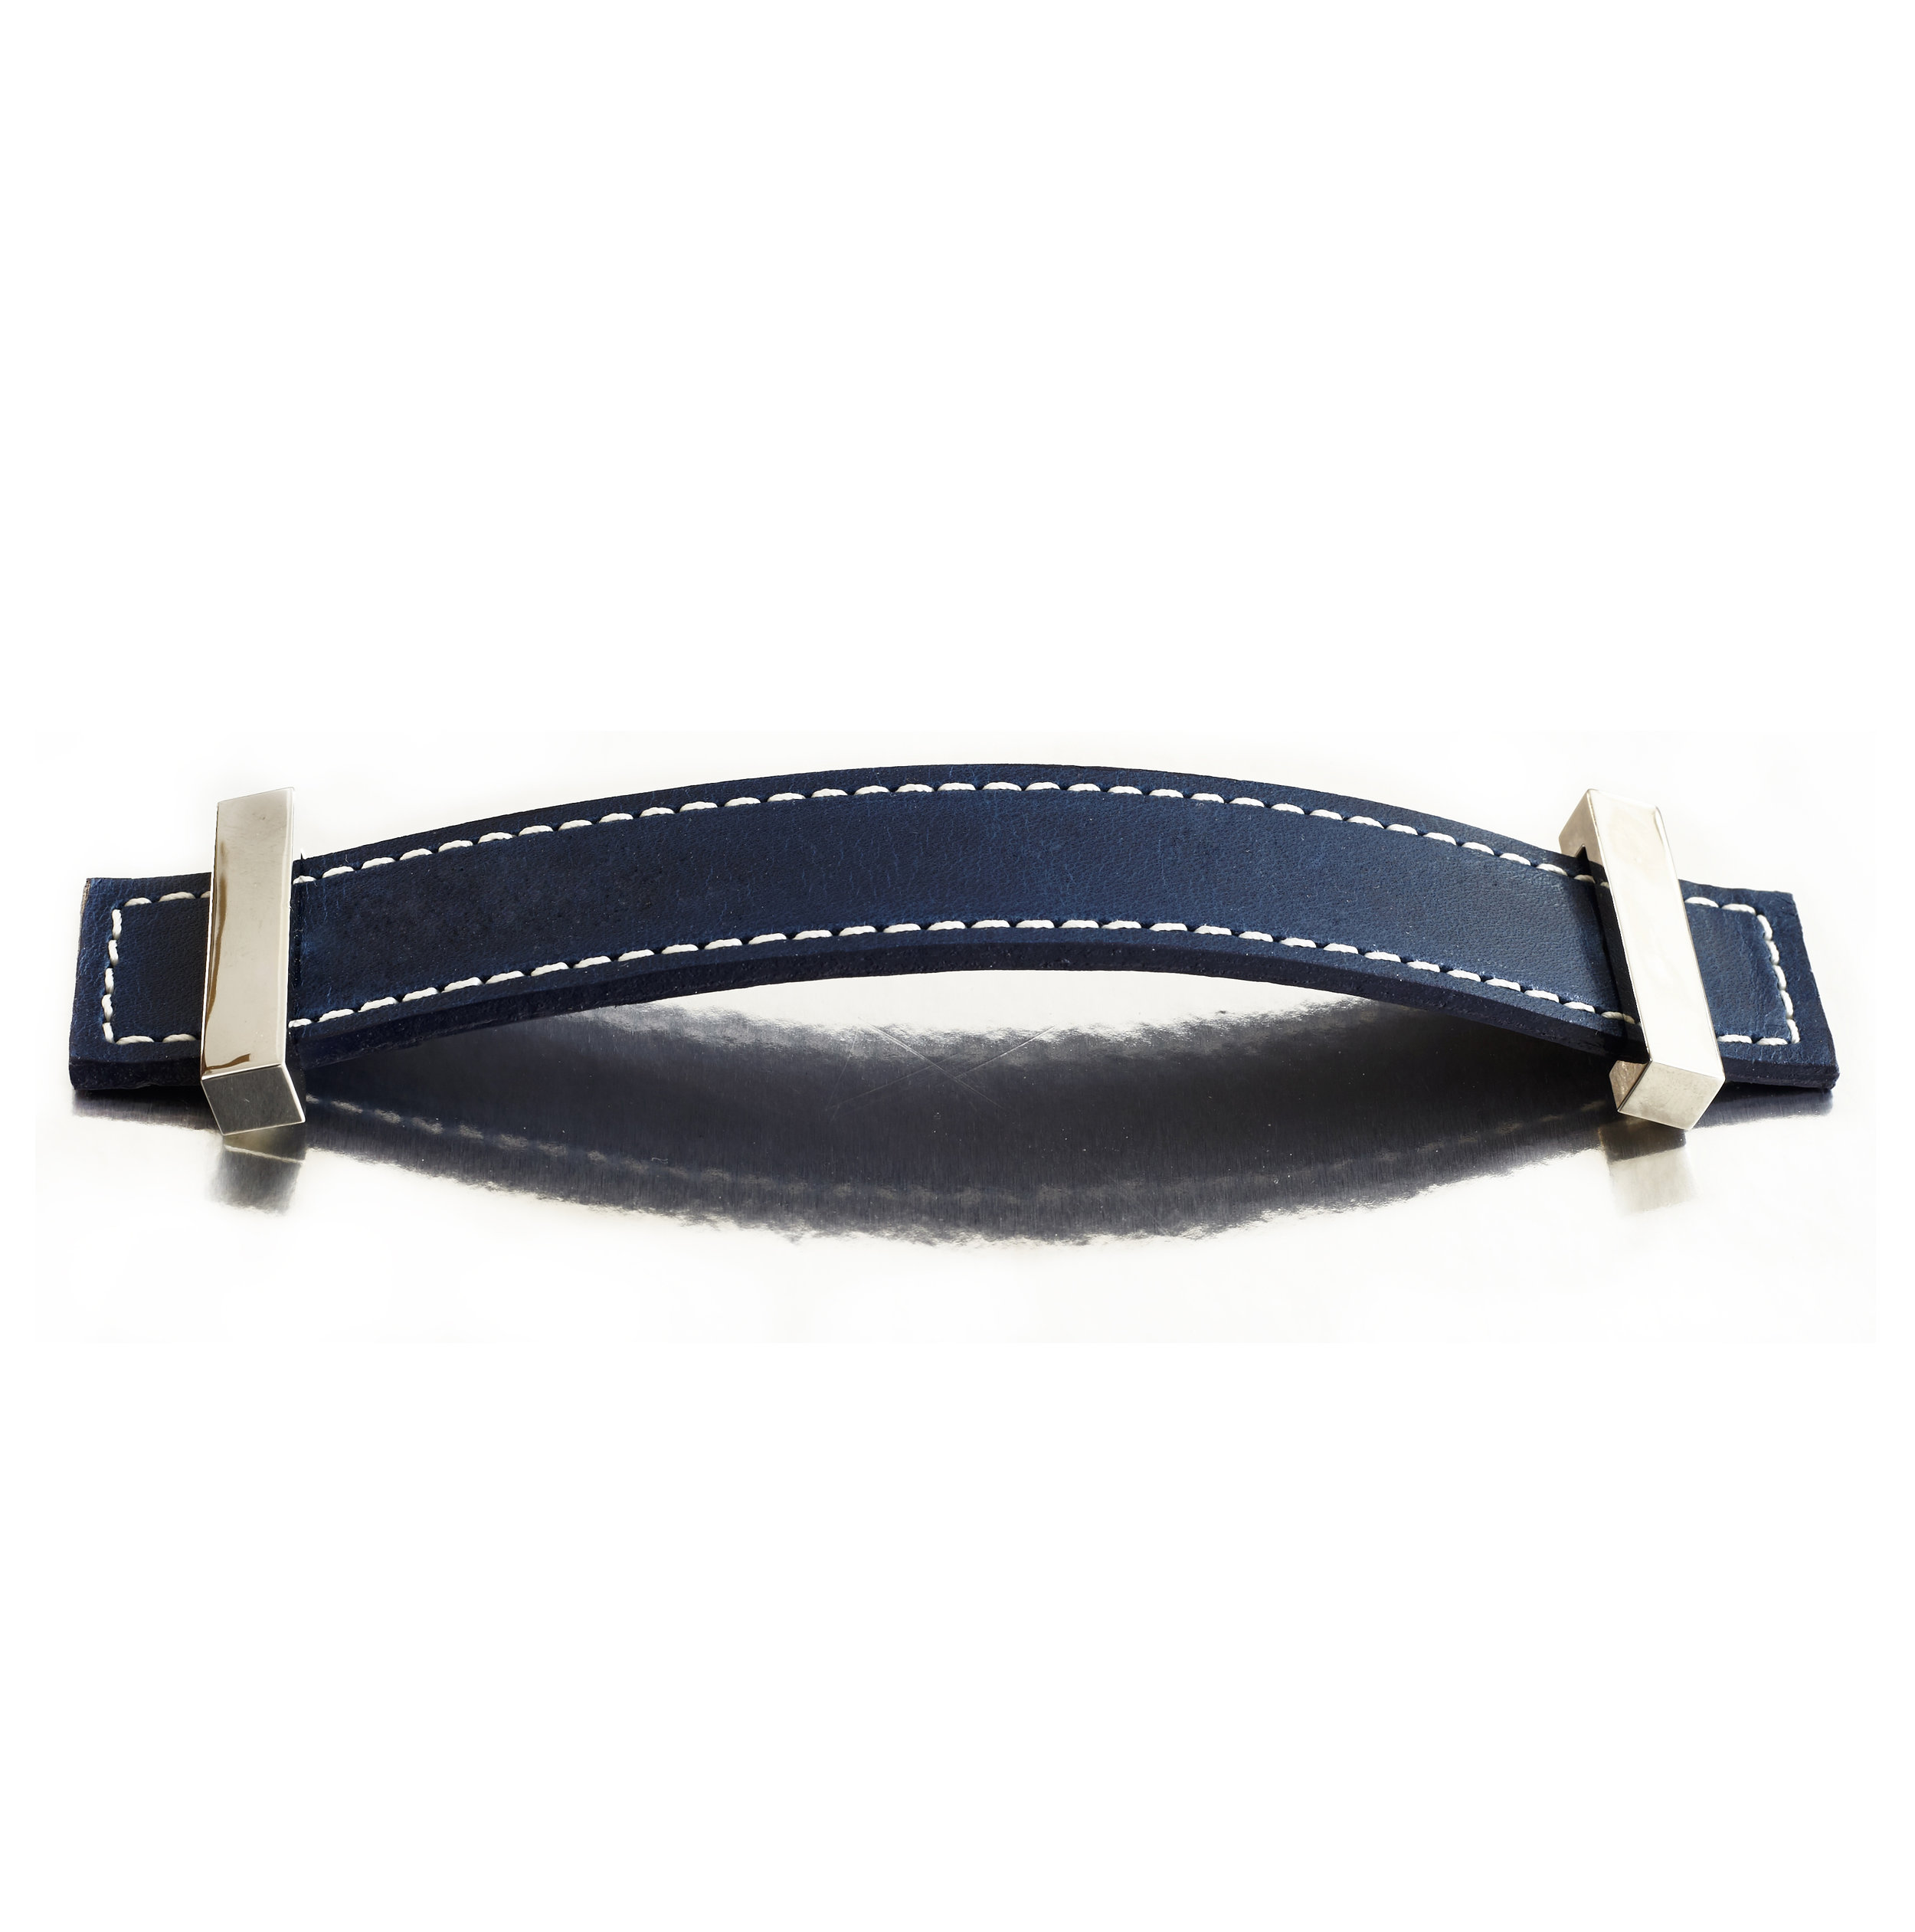 SUIT STRAP I OCEAN I EQUESTRIAN  Polished Nickel & Stitched Leather